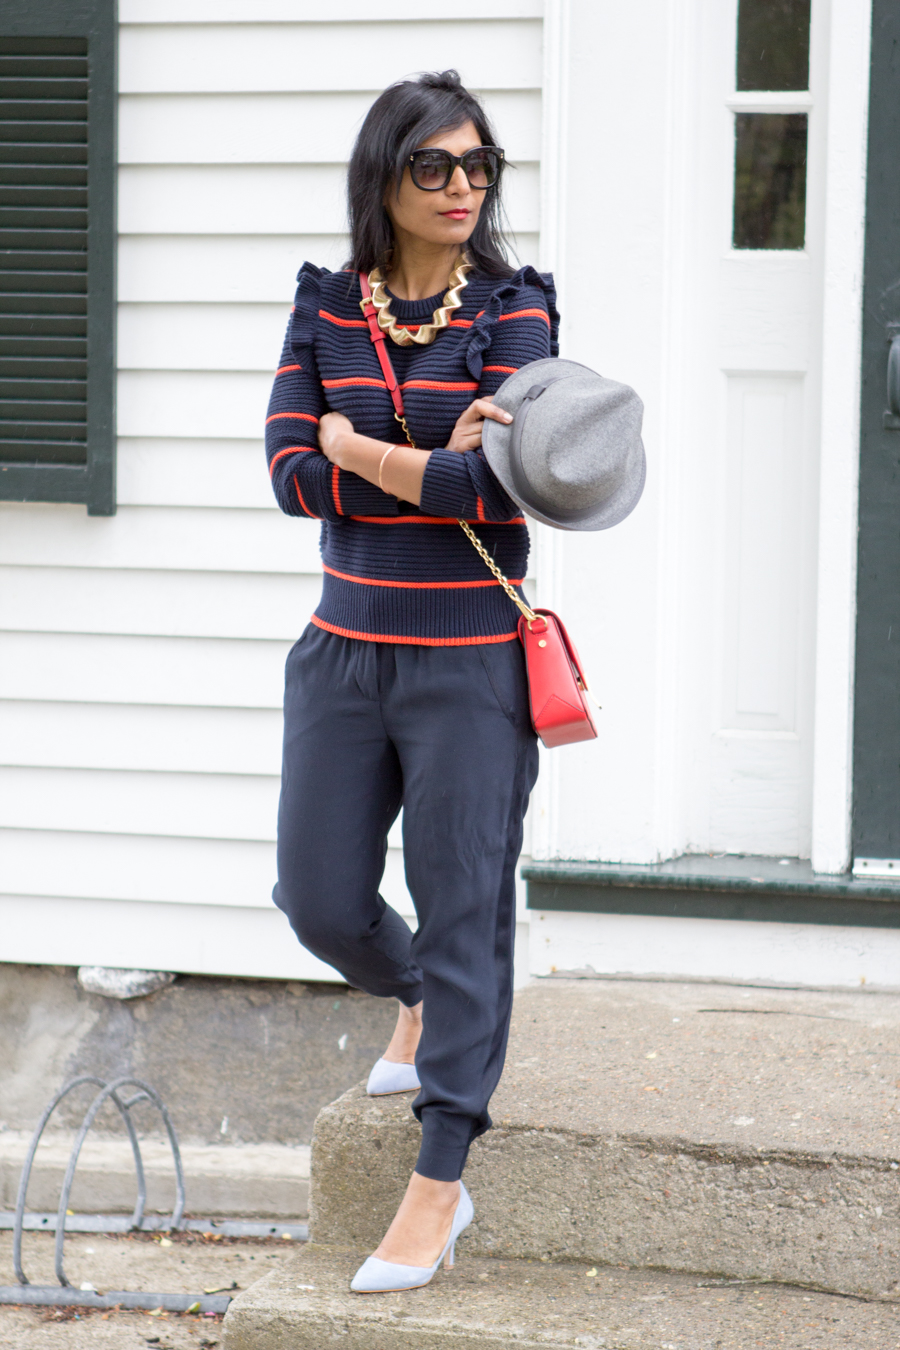 what to wear to run errands, jogger, casual pants, work to weekend, light blue pumps, fedora, banana republic, pullover, navy sweater, striped sweater, spring outfit, spring lookbook, petite fashion, mommy style, easy chic, mommy glam, red bag, dressy casual, fashion blog, petite style, style blog, street style, easy outfit